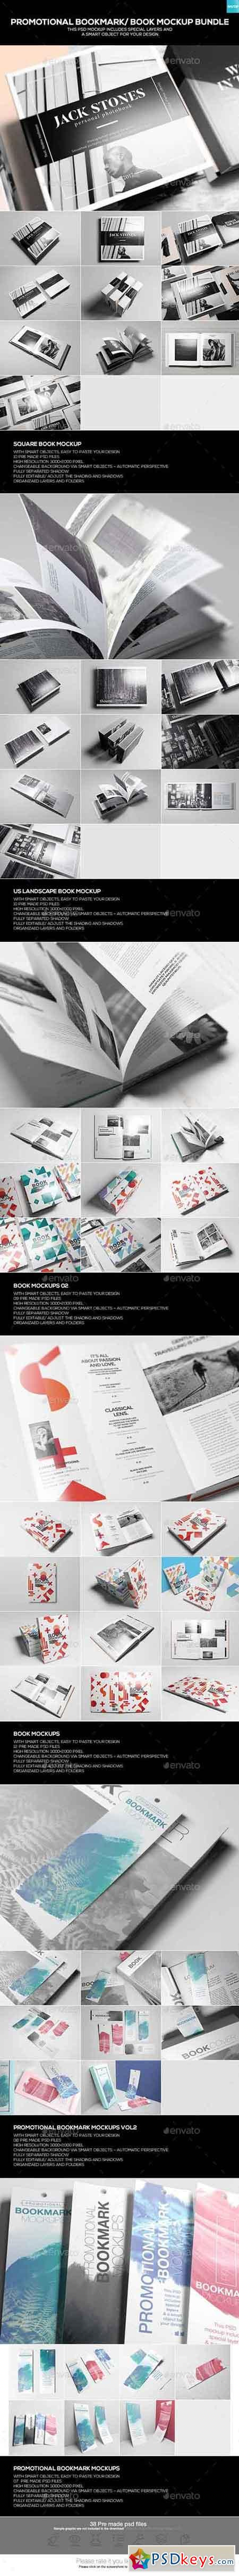 Promotional Bookmark Book Mockup Bundle 19866657